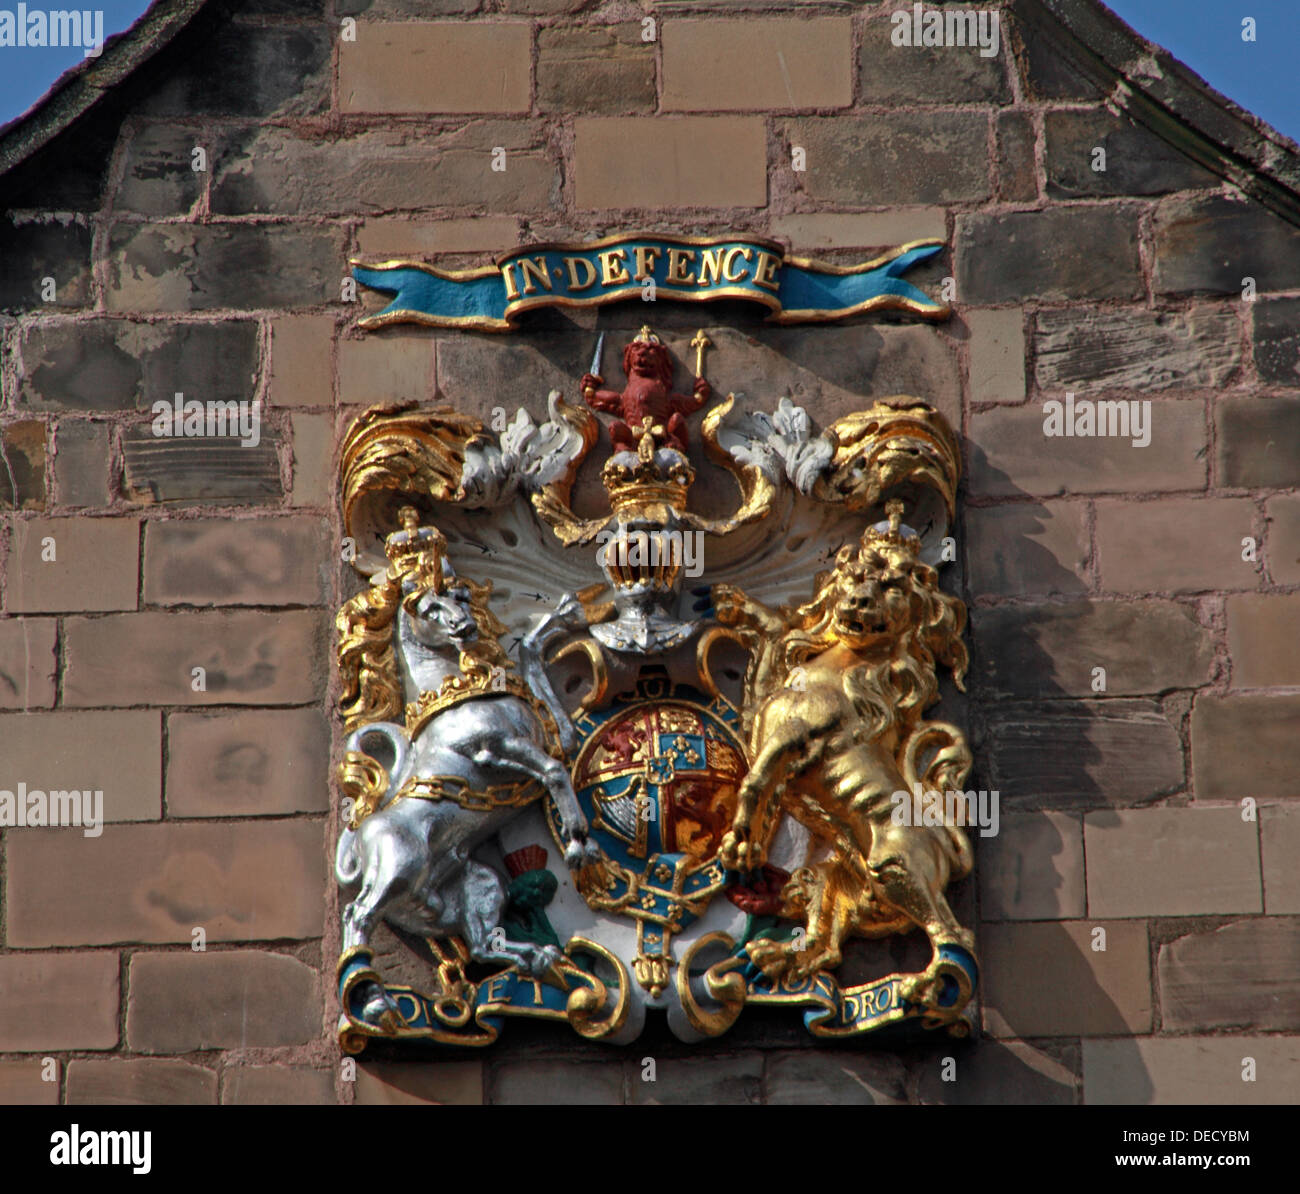 EH8,8BN,EH88BN,exterior,wall,outside,historic,tourist,travel,building,architecture,kirkyard,churchyard,yard,Canon,gate,of,old,town,oldtown,parish,castle,cots,Scottish,scotch,burgh,city,Dutch-style,end,gable,worship,services,Sunday,anglican,religion,religion,Christianity,royal,IN,DEFENCE,crest,stone,gotonysmith,Palace,of,Holyroodhouse,Holyrood,capital,Dutch,style,small,doric-columned,portico,over,the,entrance,doric,column,columned,Regiment,of,the,British,Army,chapel,coat,of,arms,oldtown,Buy Pictures of,Buy Images Of